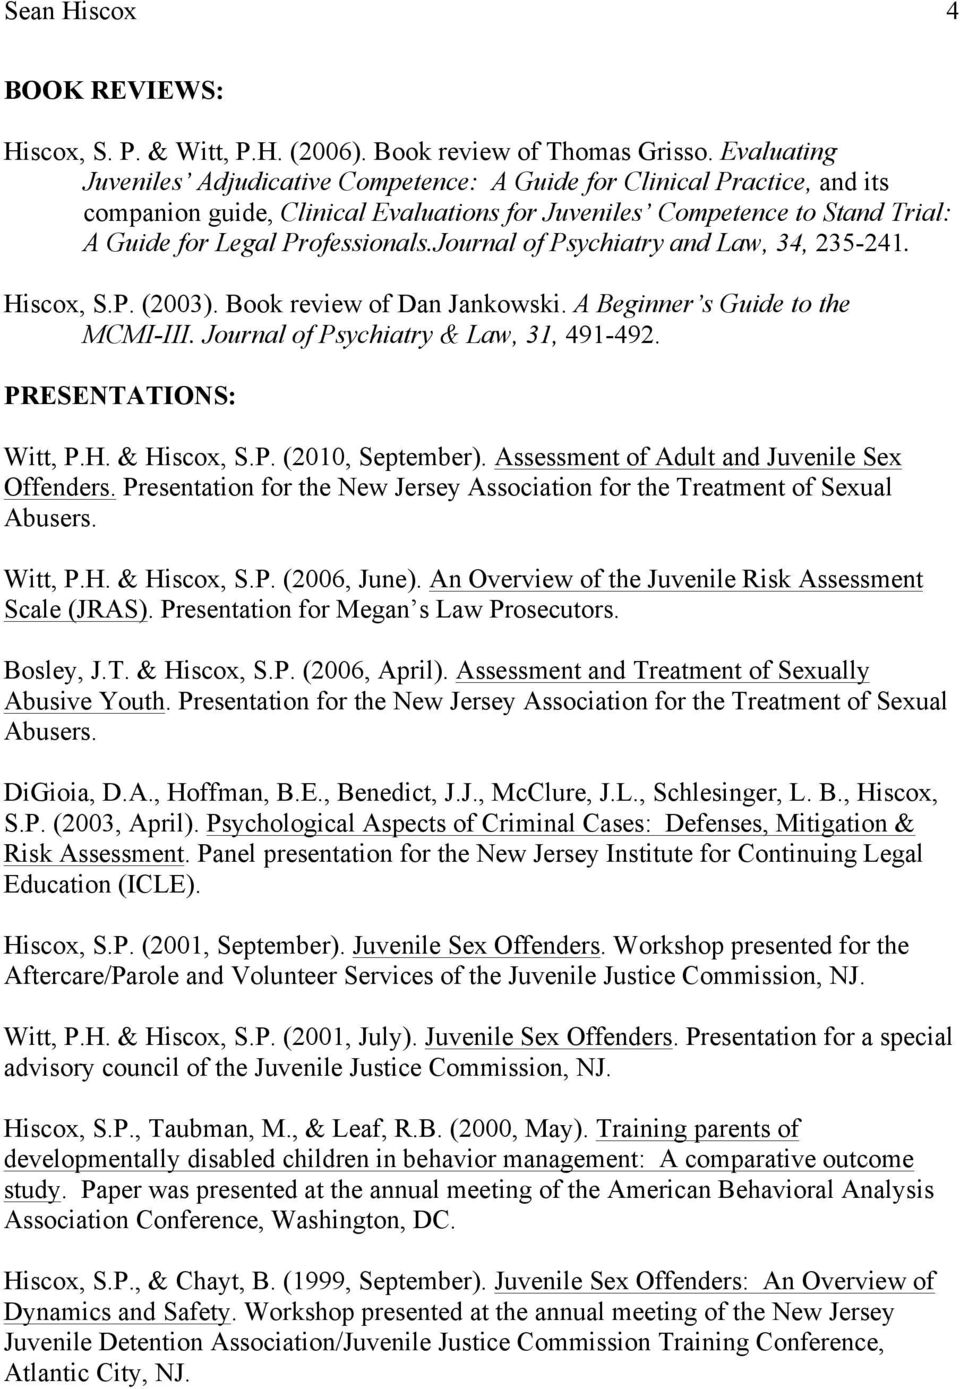 Journal of Psychiatry and Law, 34, 235-241. Hiscox, S.P. (2003). Book review of Dan Jankowski. A Beginner s Guide to the MCMI-III. Journal of Psychiatry & Law, 31, 491-492. PRESENTATIONS: Witt, P.H. & Hiscox, S.